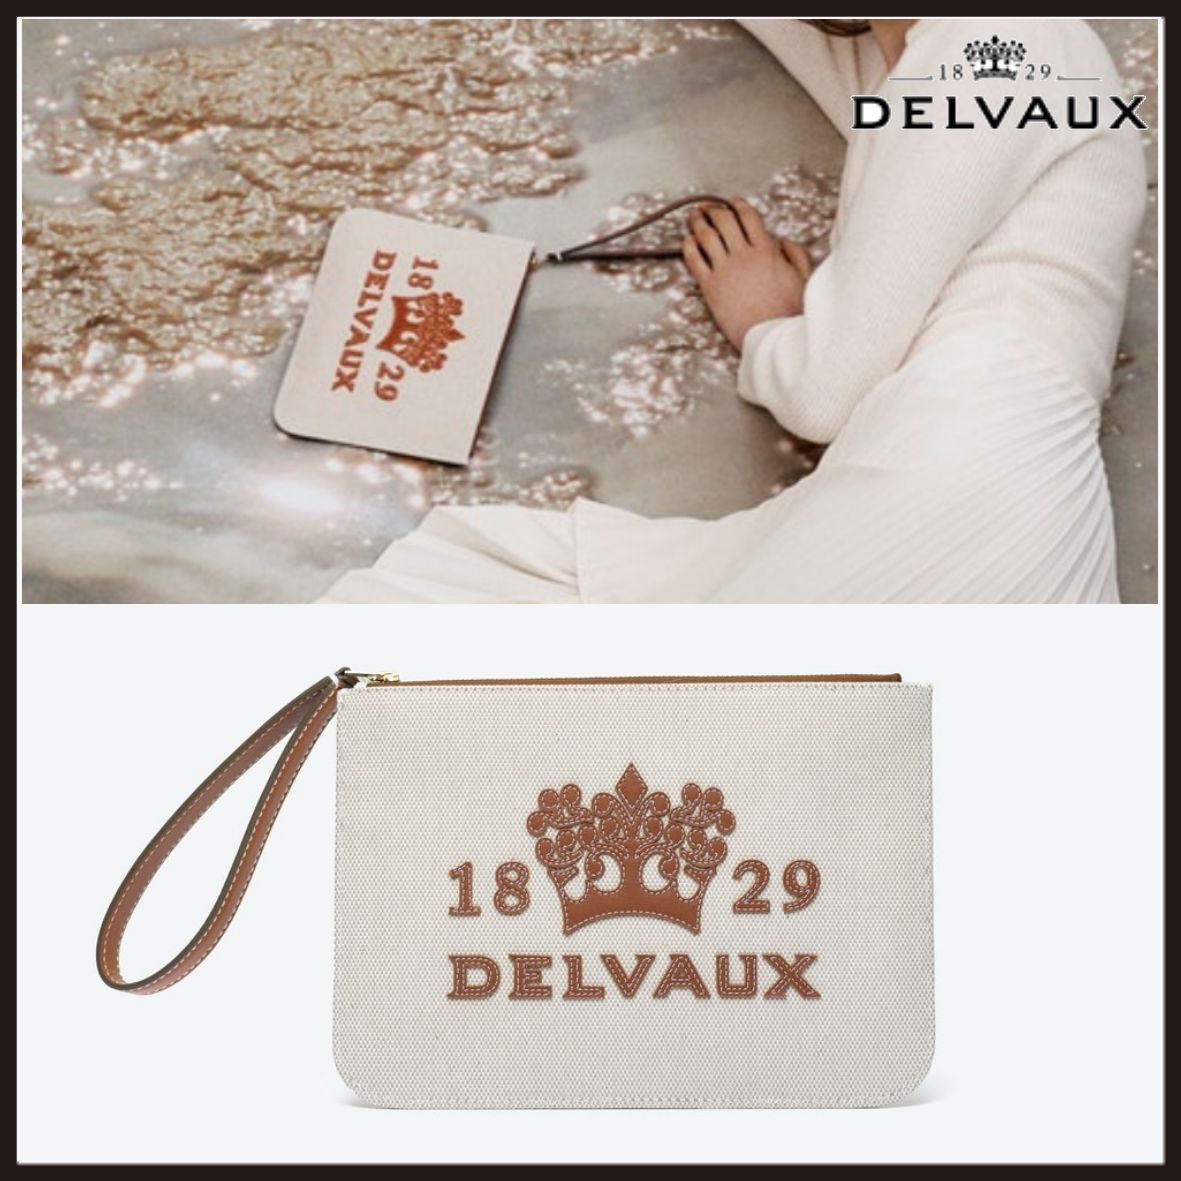 DELVAUX◆Delight Pouch キャンバス×レザー ロゴ ポーチ (DELVAUX/ポーチ) 71513419